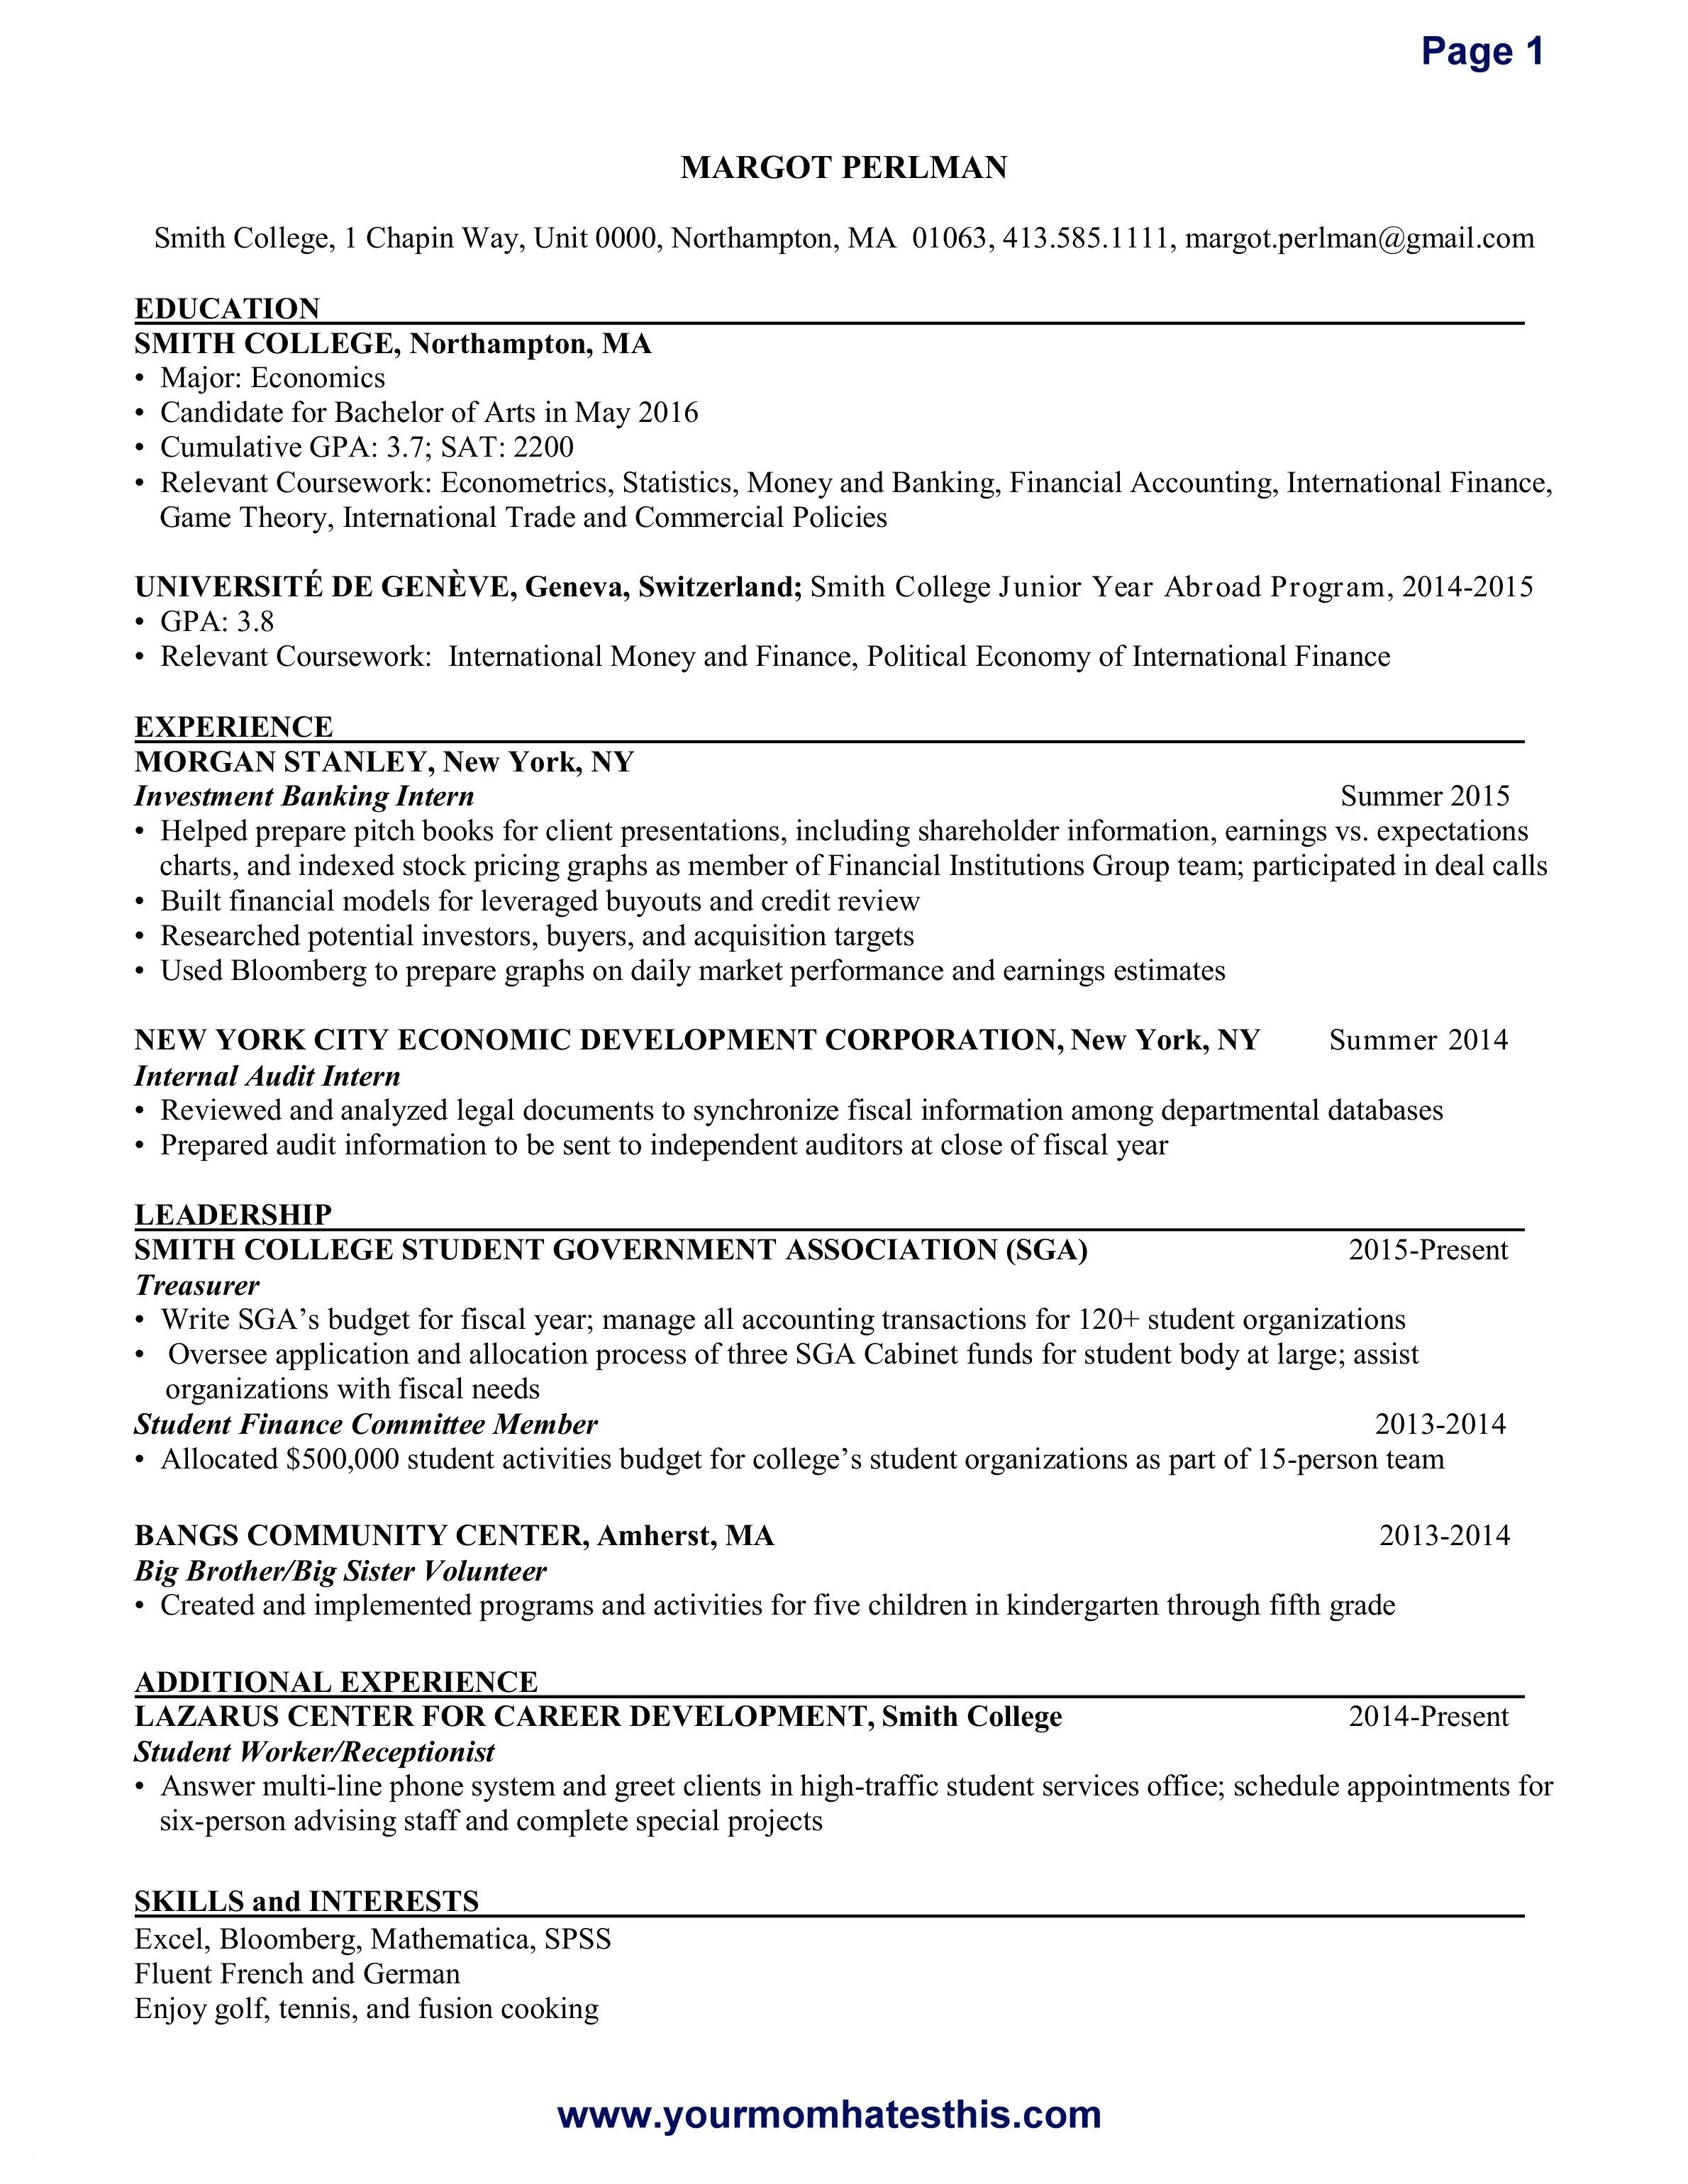 Internship Resume Template Microsoft Word - Resume for Internship Lovely Luxury Grapher Resume Sample Beautiful